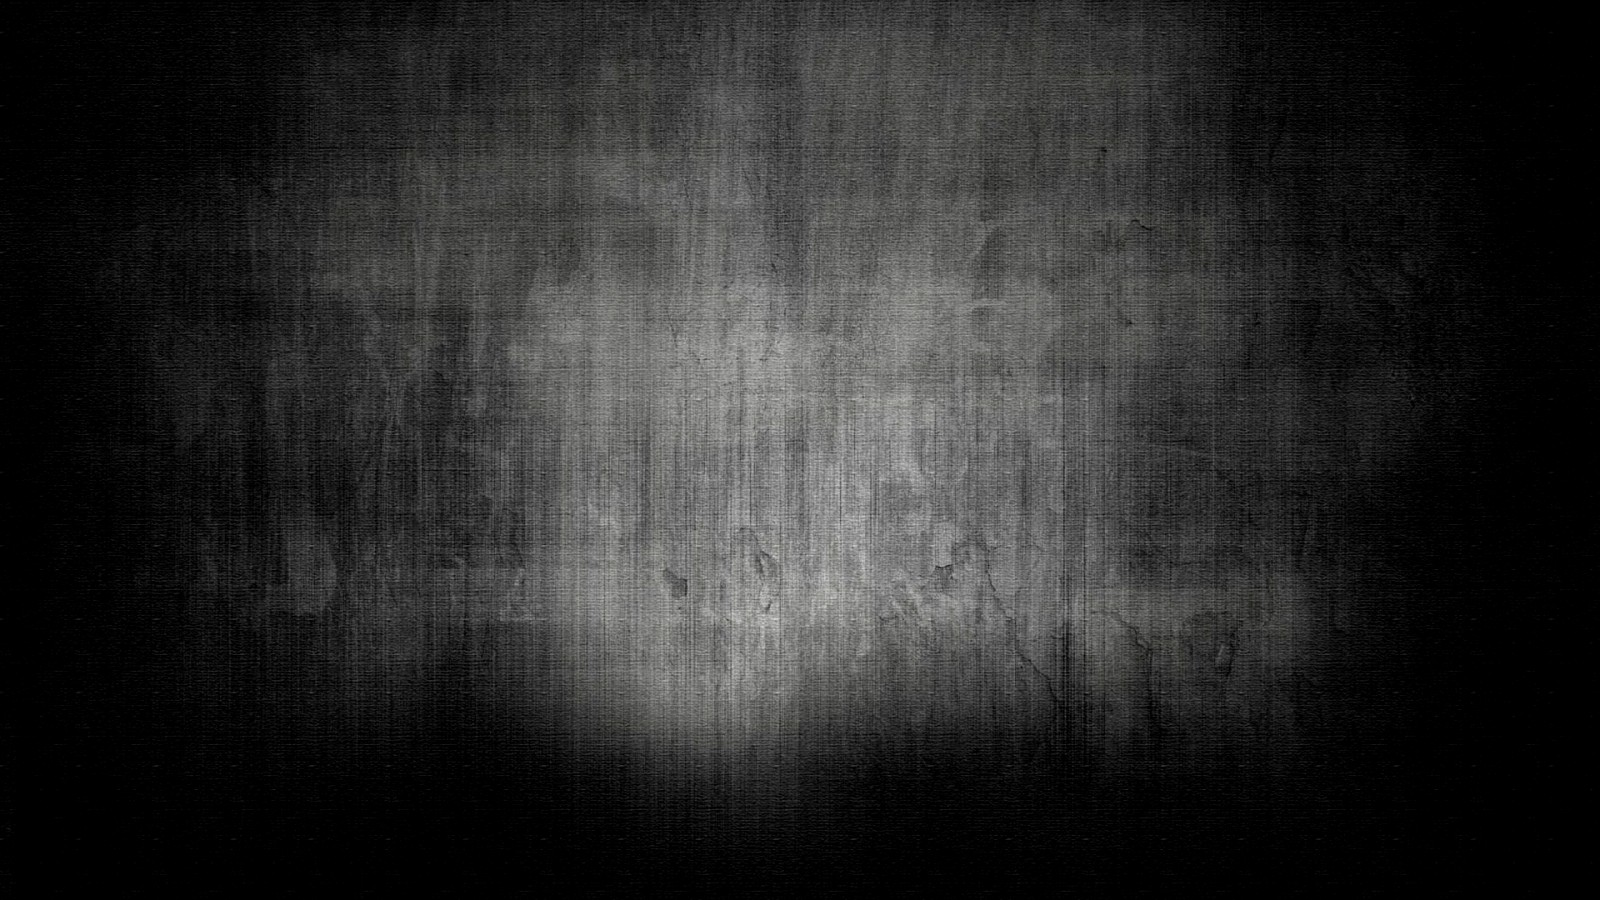 Background Dark - WallpaperSafari